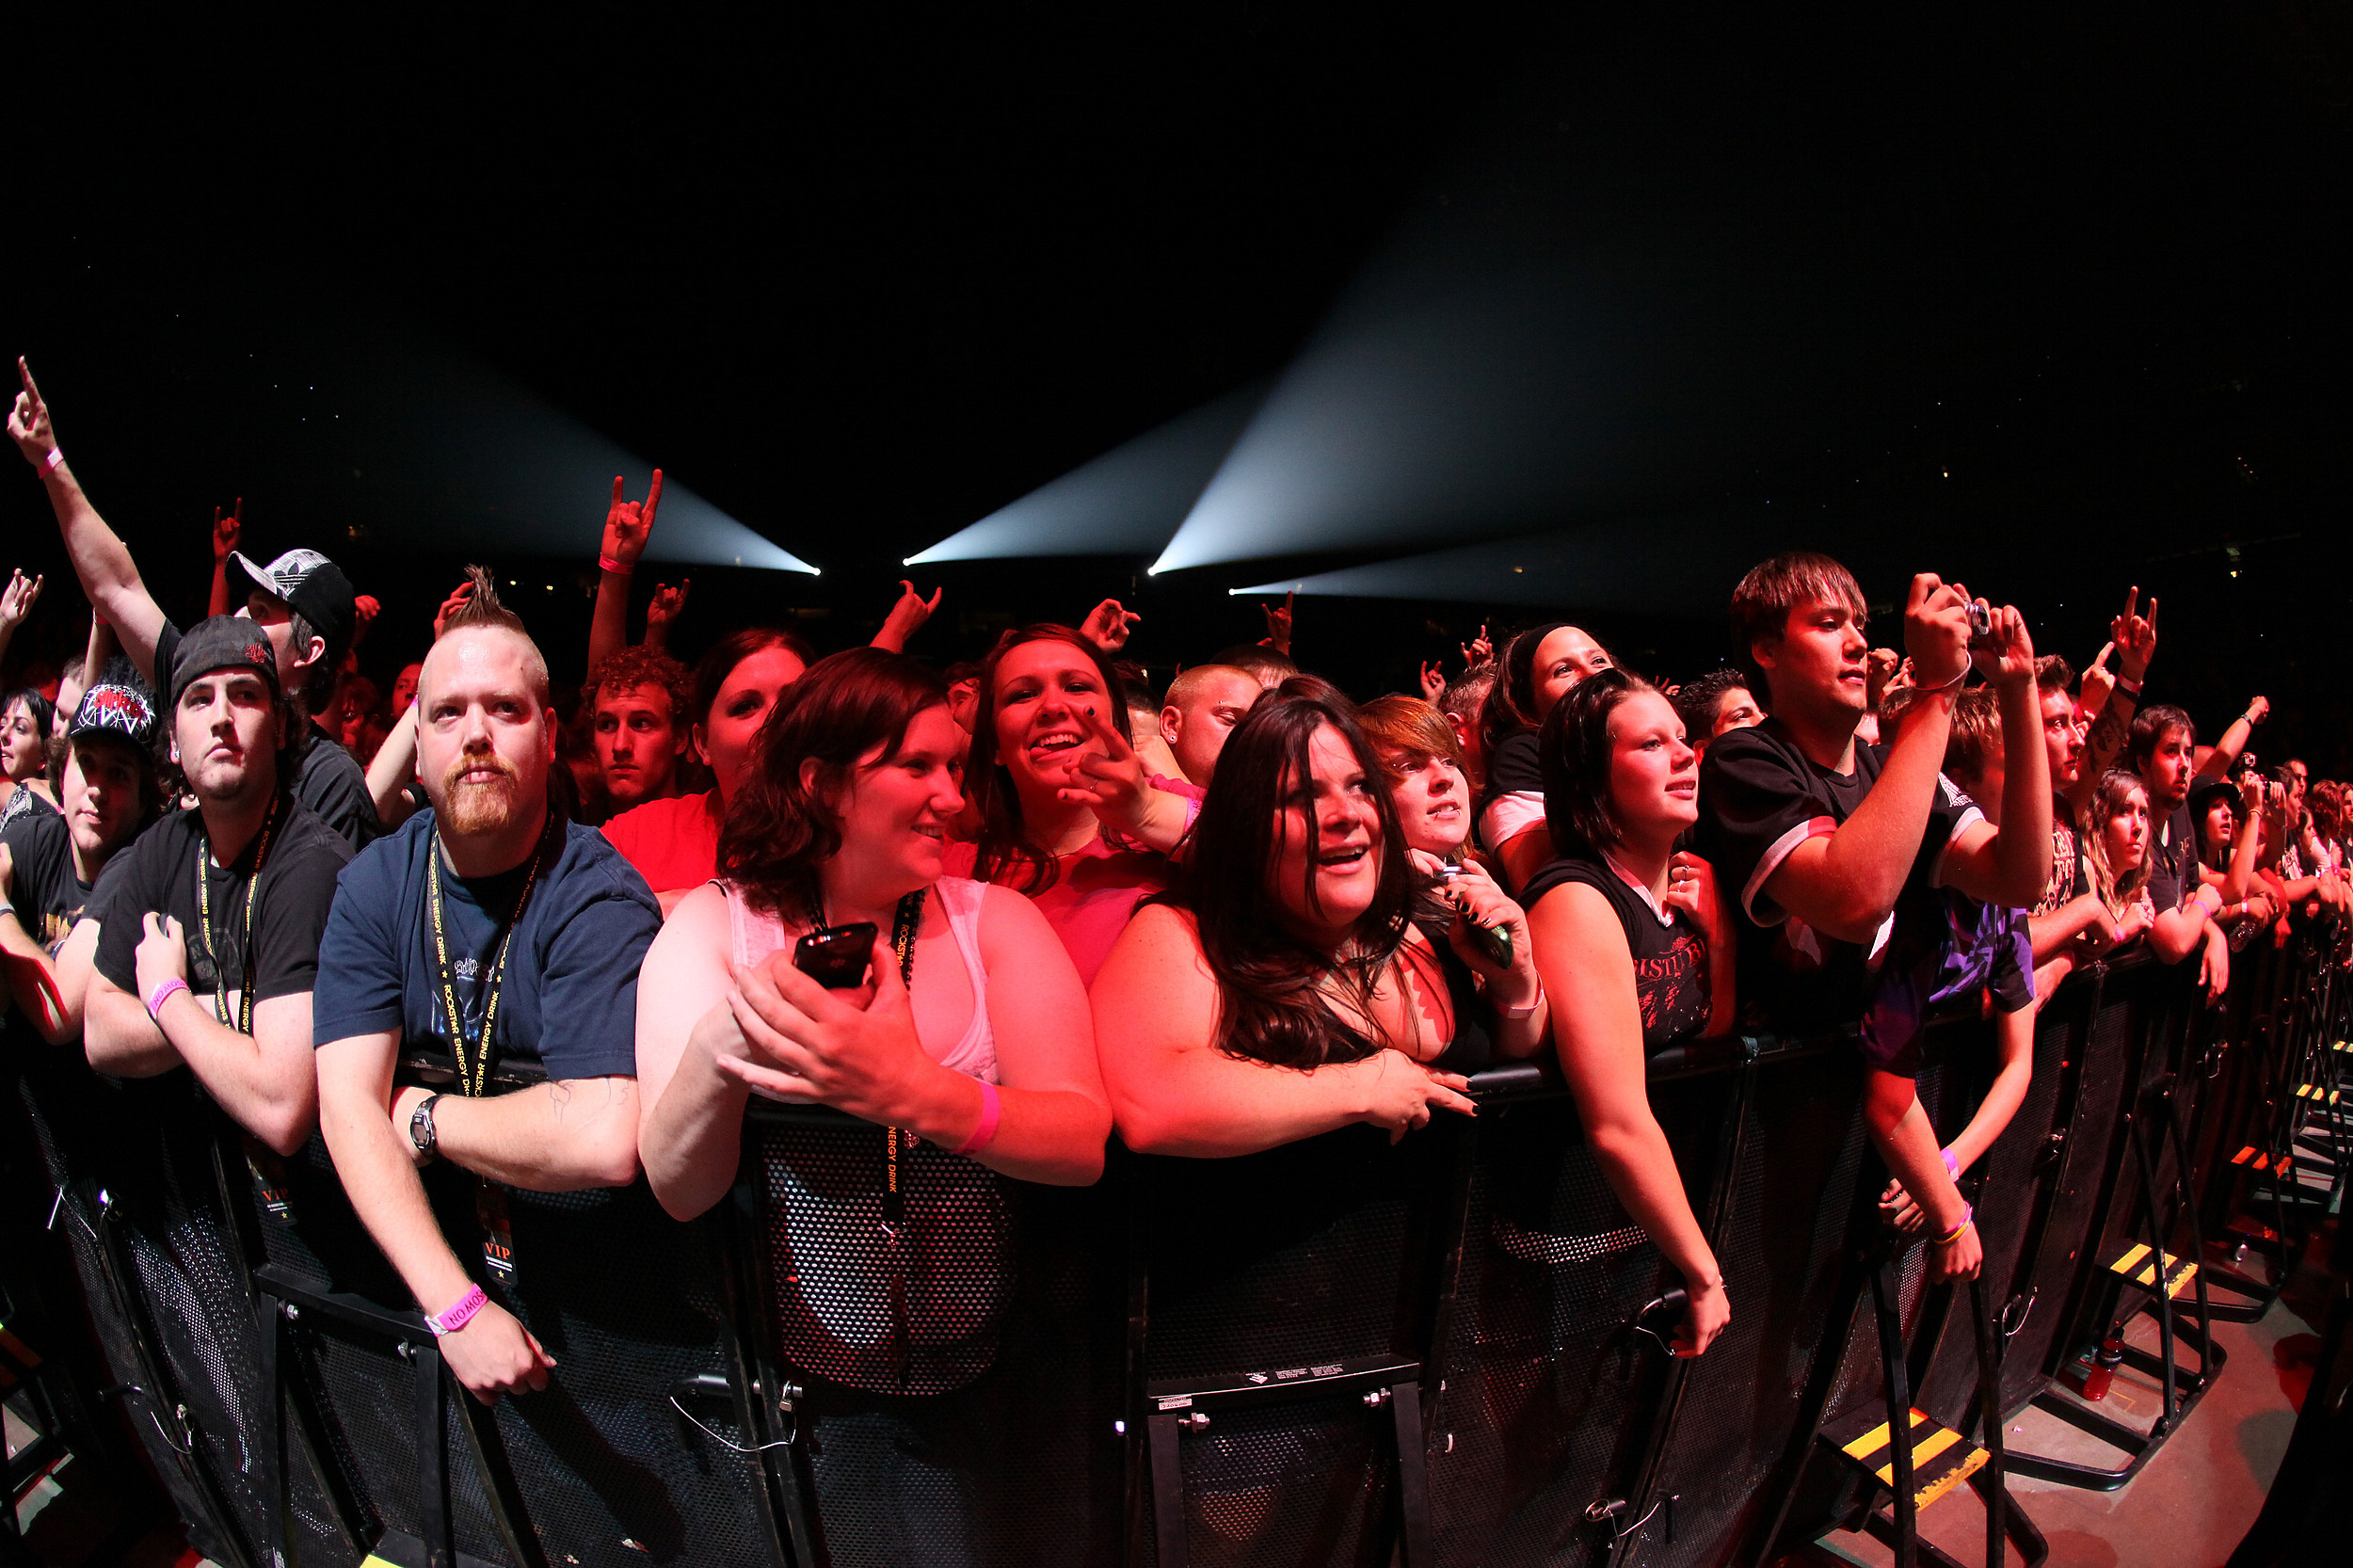 Crowd at Stone Sour show